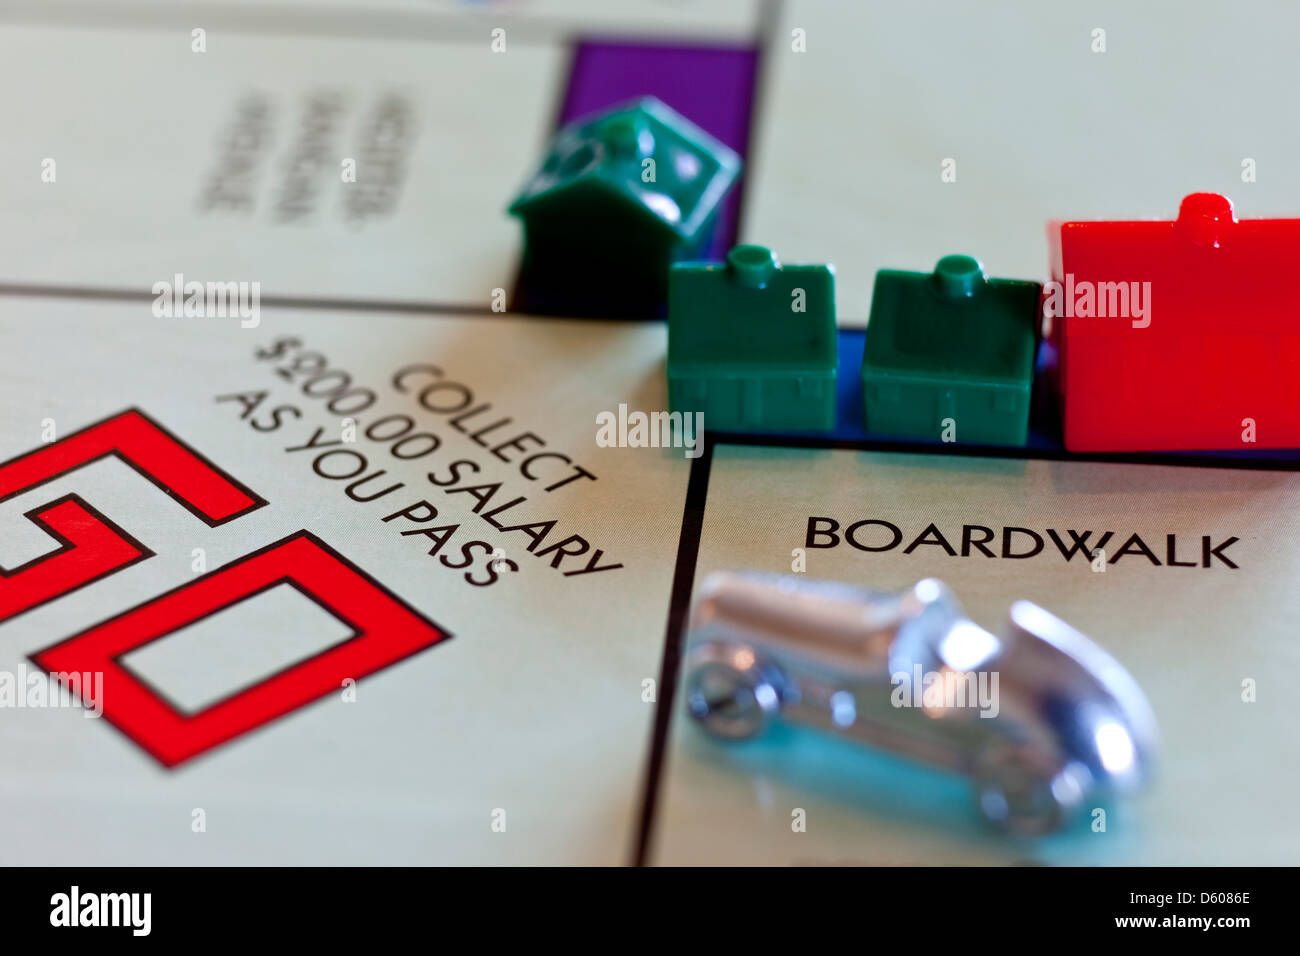 Monopoly board game - Pass Go, collect $200 - Stock Image